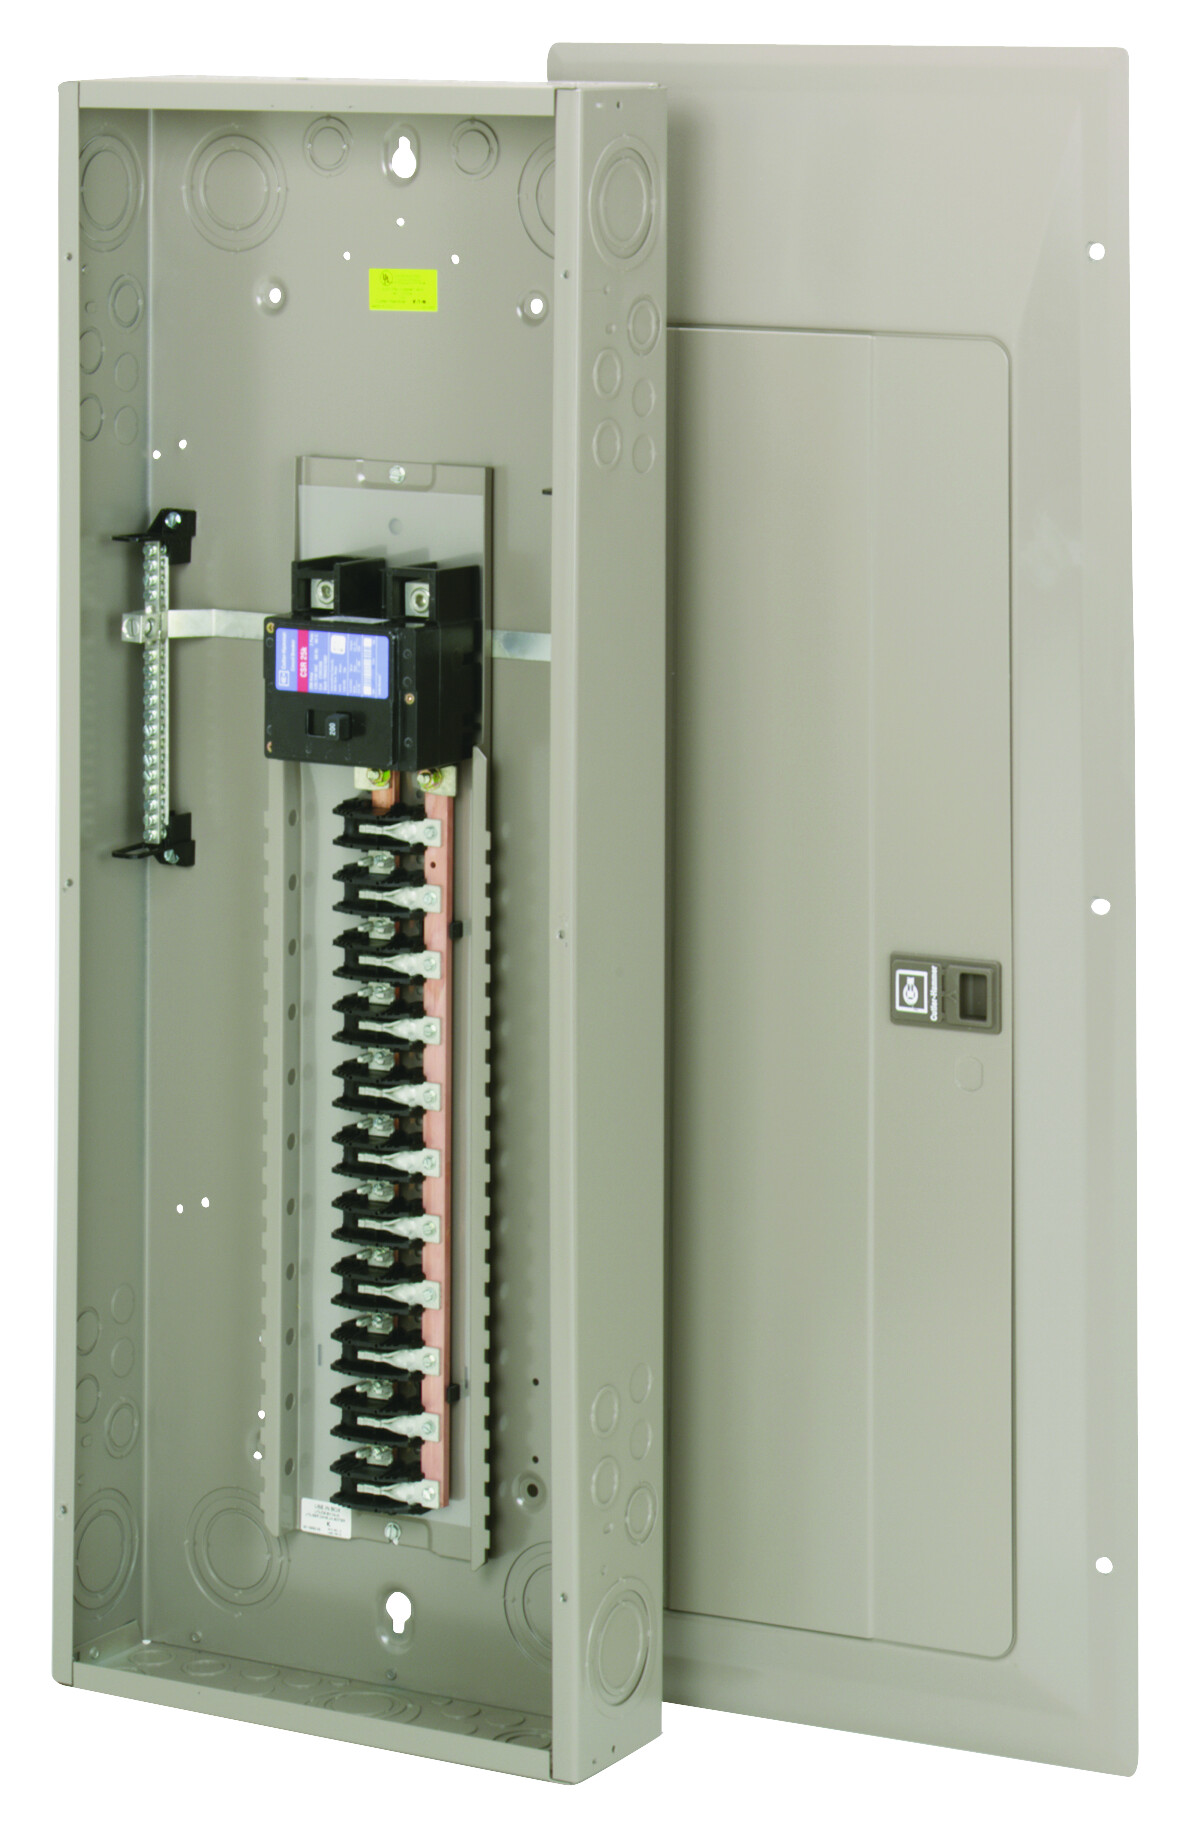 hight resolution of cutler hammer chp42b200 200 amp main breaker panel tap to expand